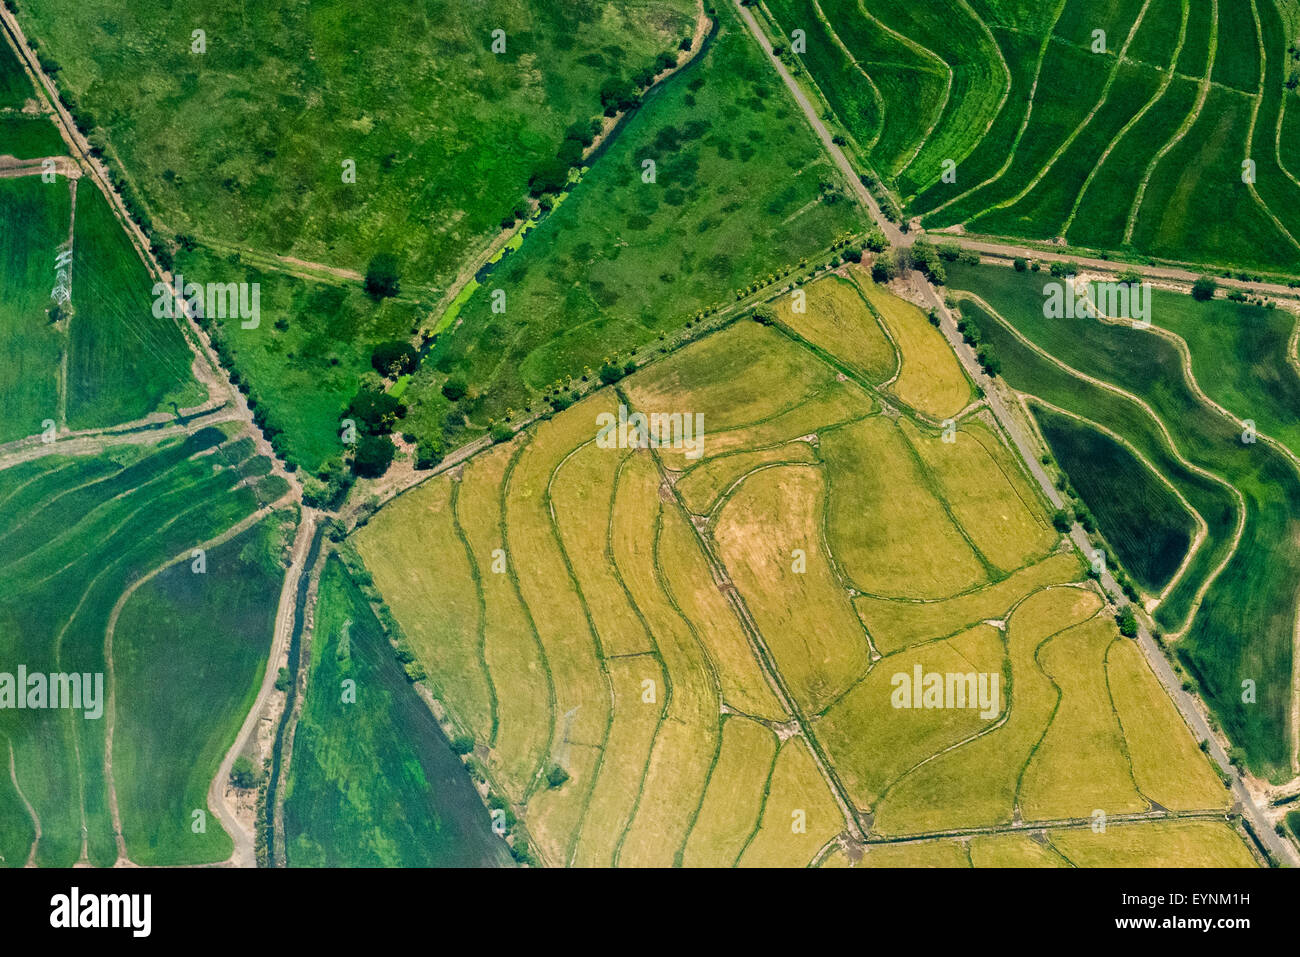 Typical irrigation plans in fields near San Jose, Costa Rica - Stock Image